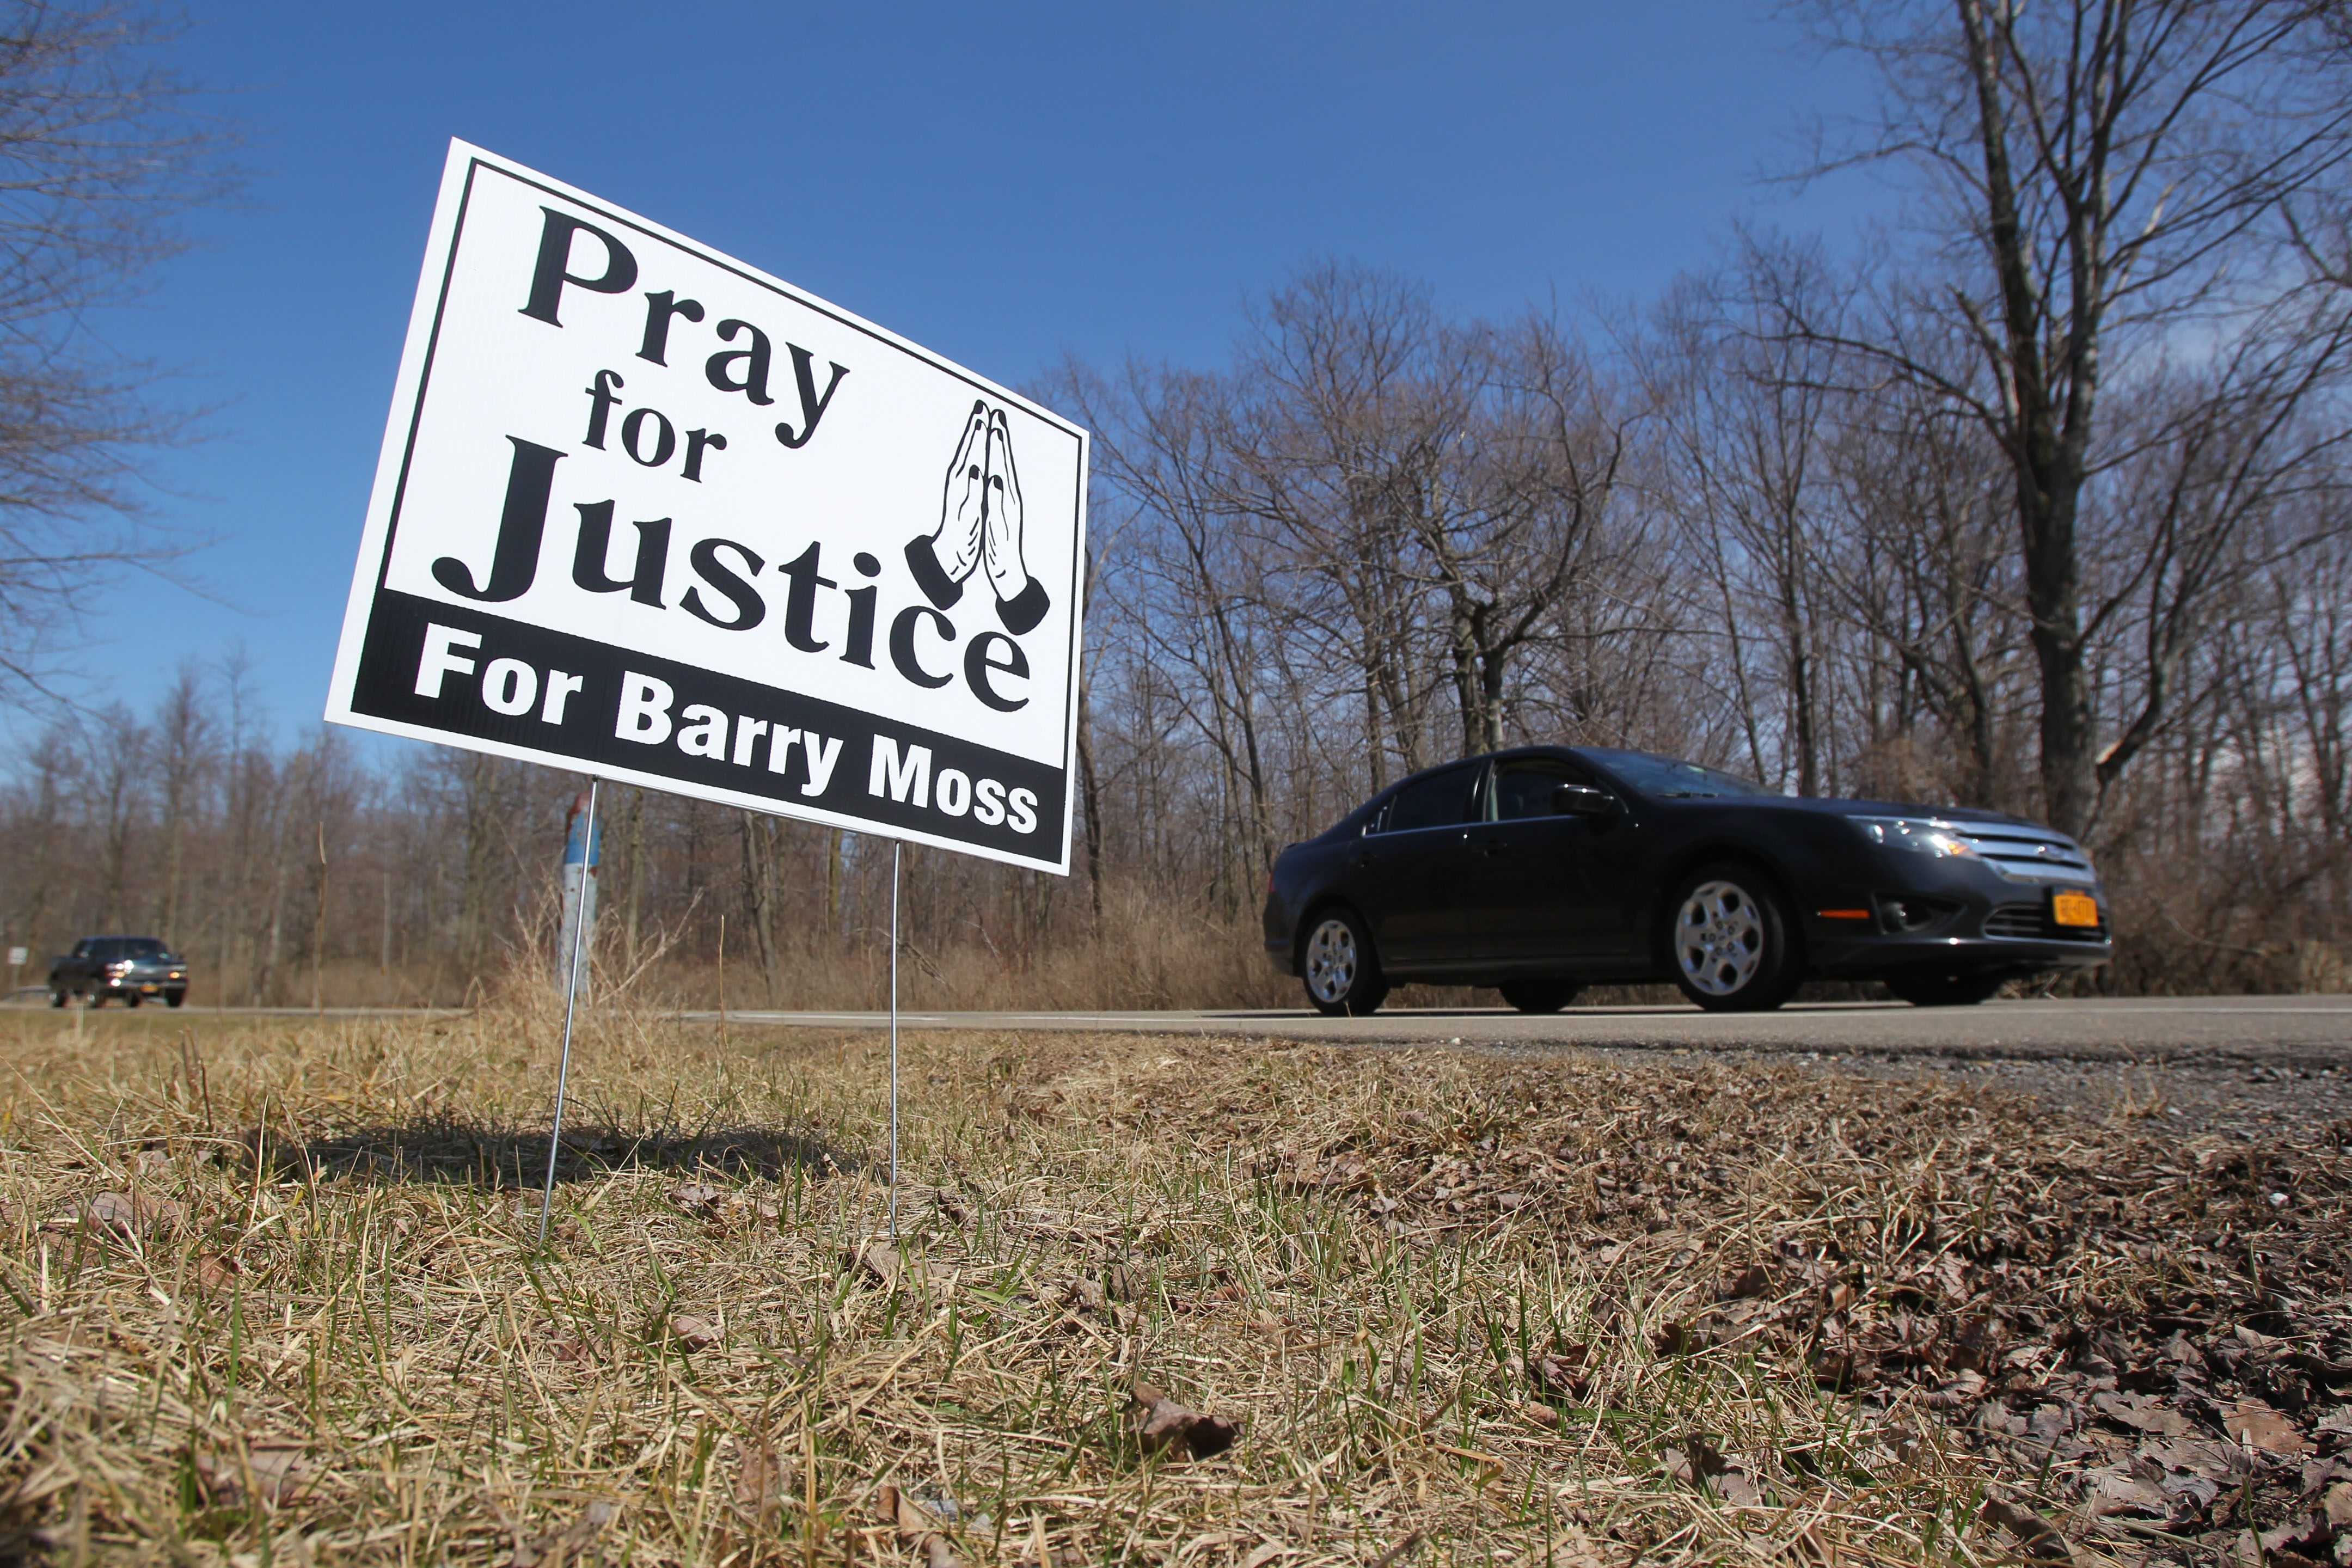 Some 150 signs seeking justice for the death of Barry Moss have sprung up in Evans.